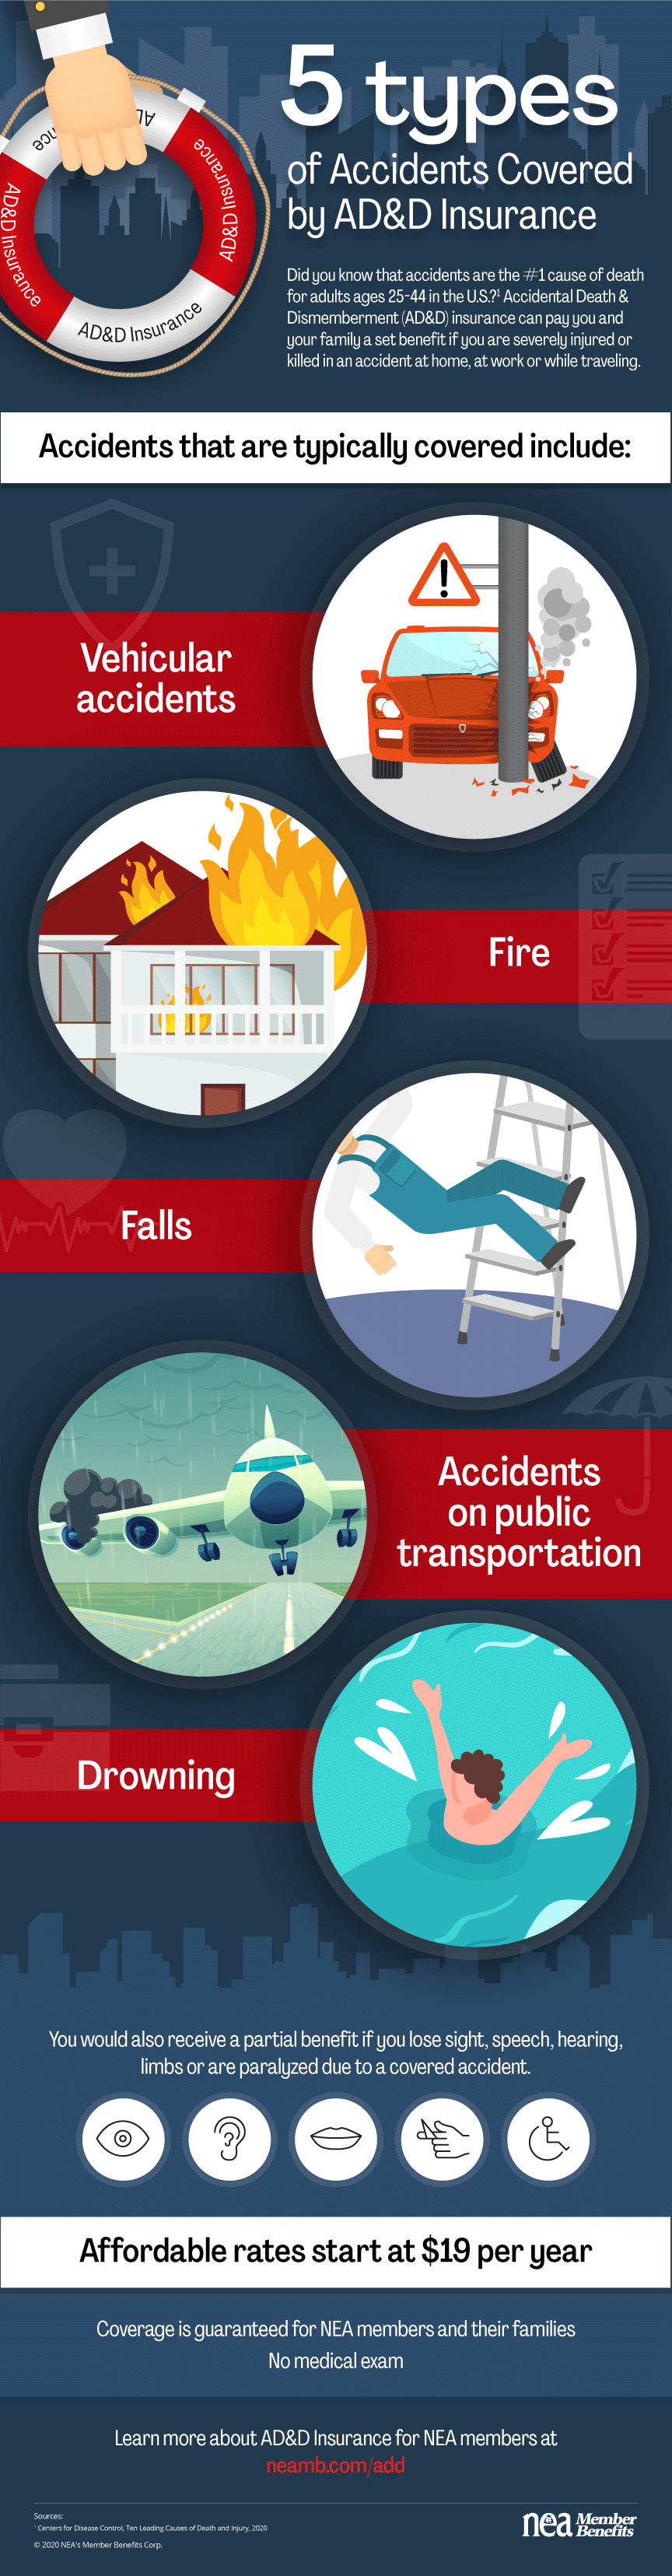 5 Types of Accidents Accidental Death and Dismemberment Insurance Covers Infographic